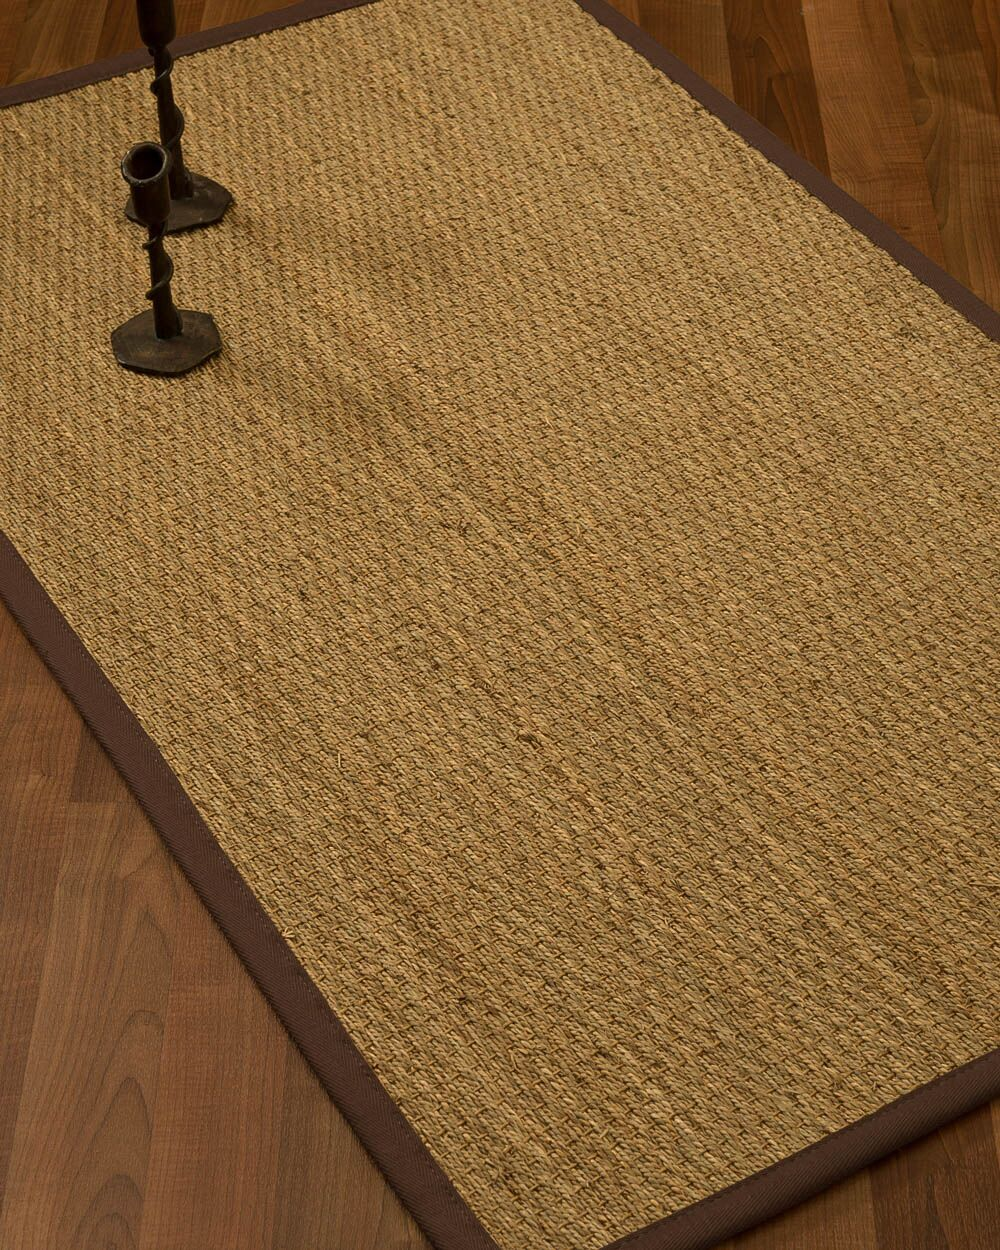 Vanmatre Border Hand-Woven Beige/Brown Area Rug Rug Size: Rectangle 9' x 12', Rug Pad Included: Yes